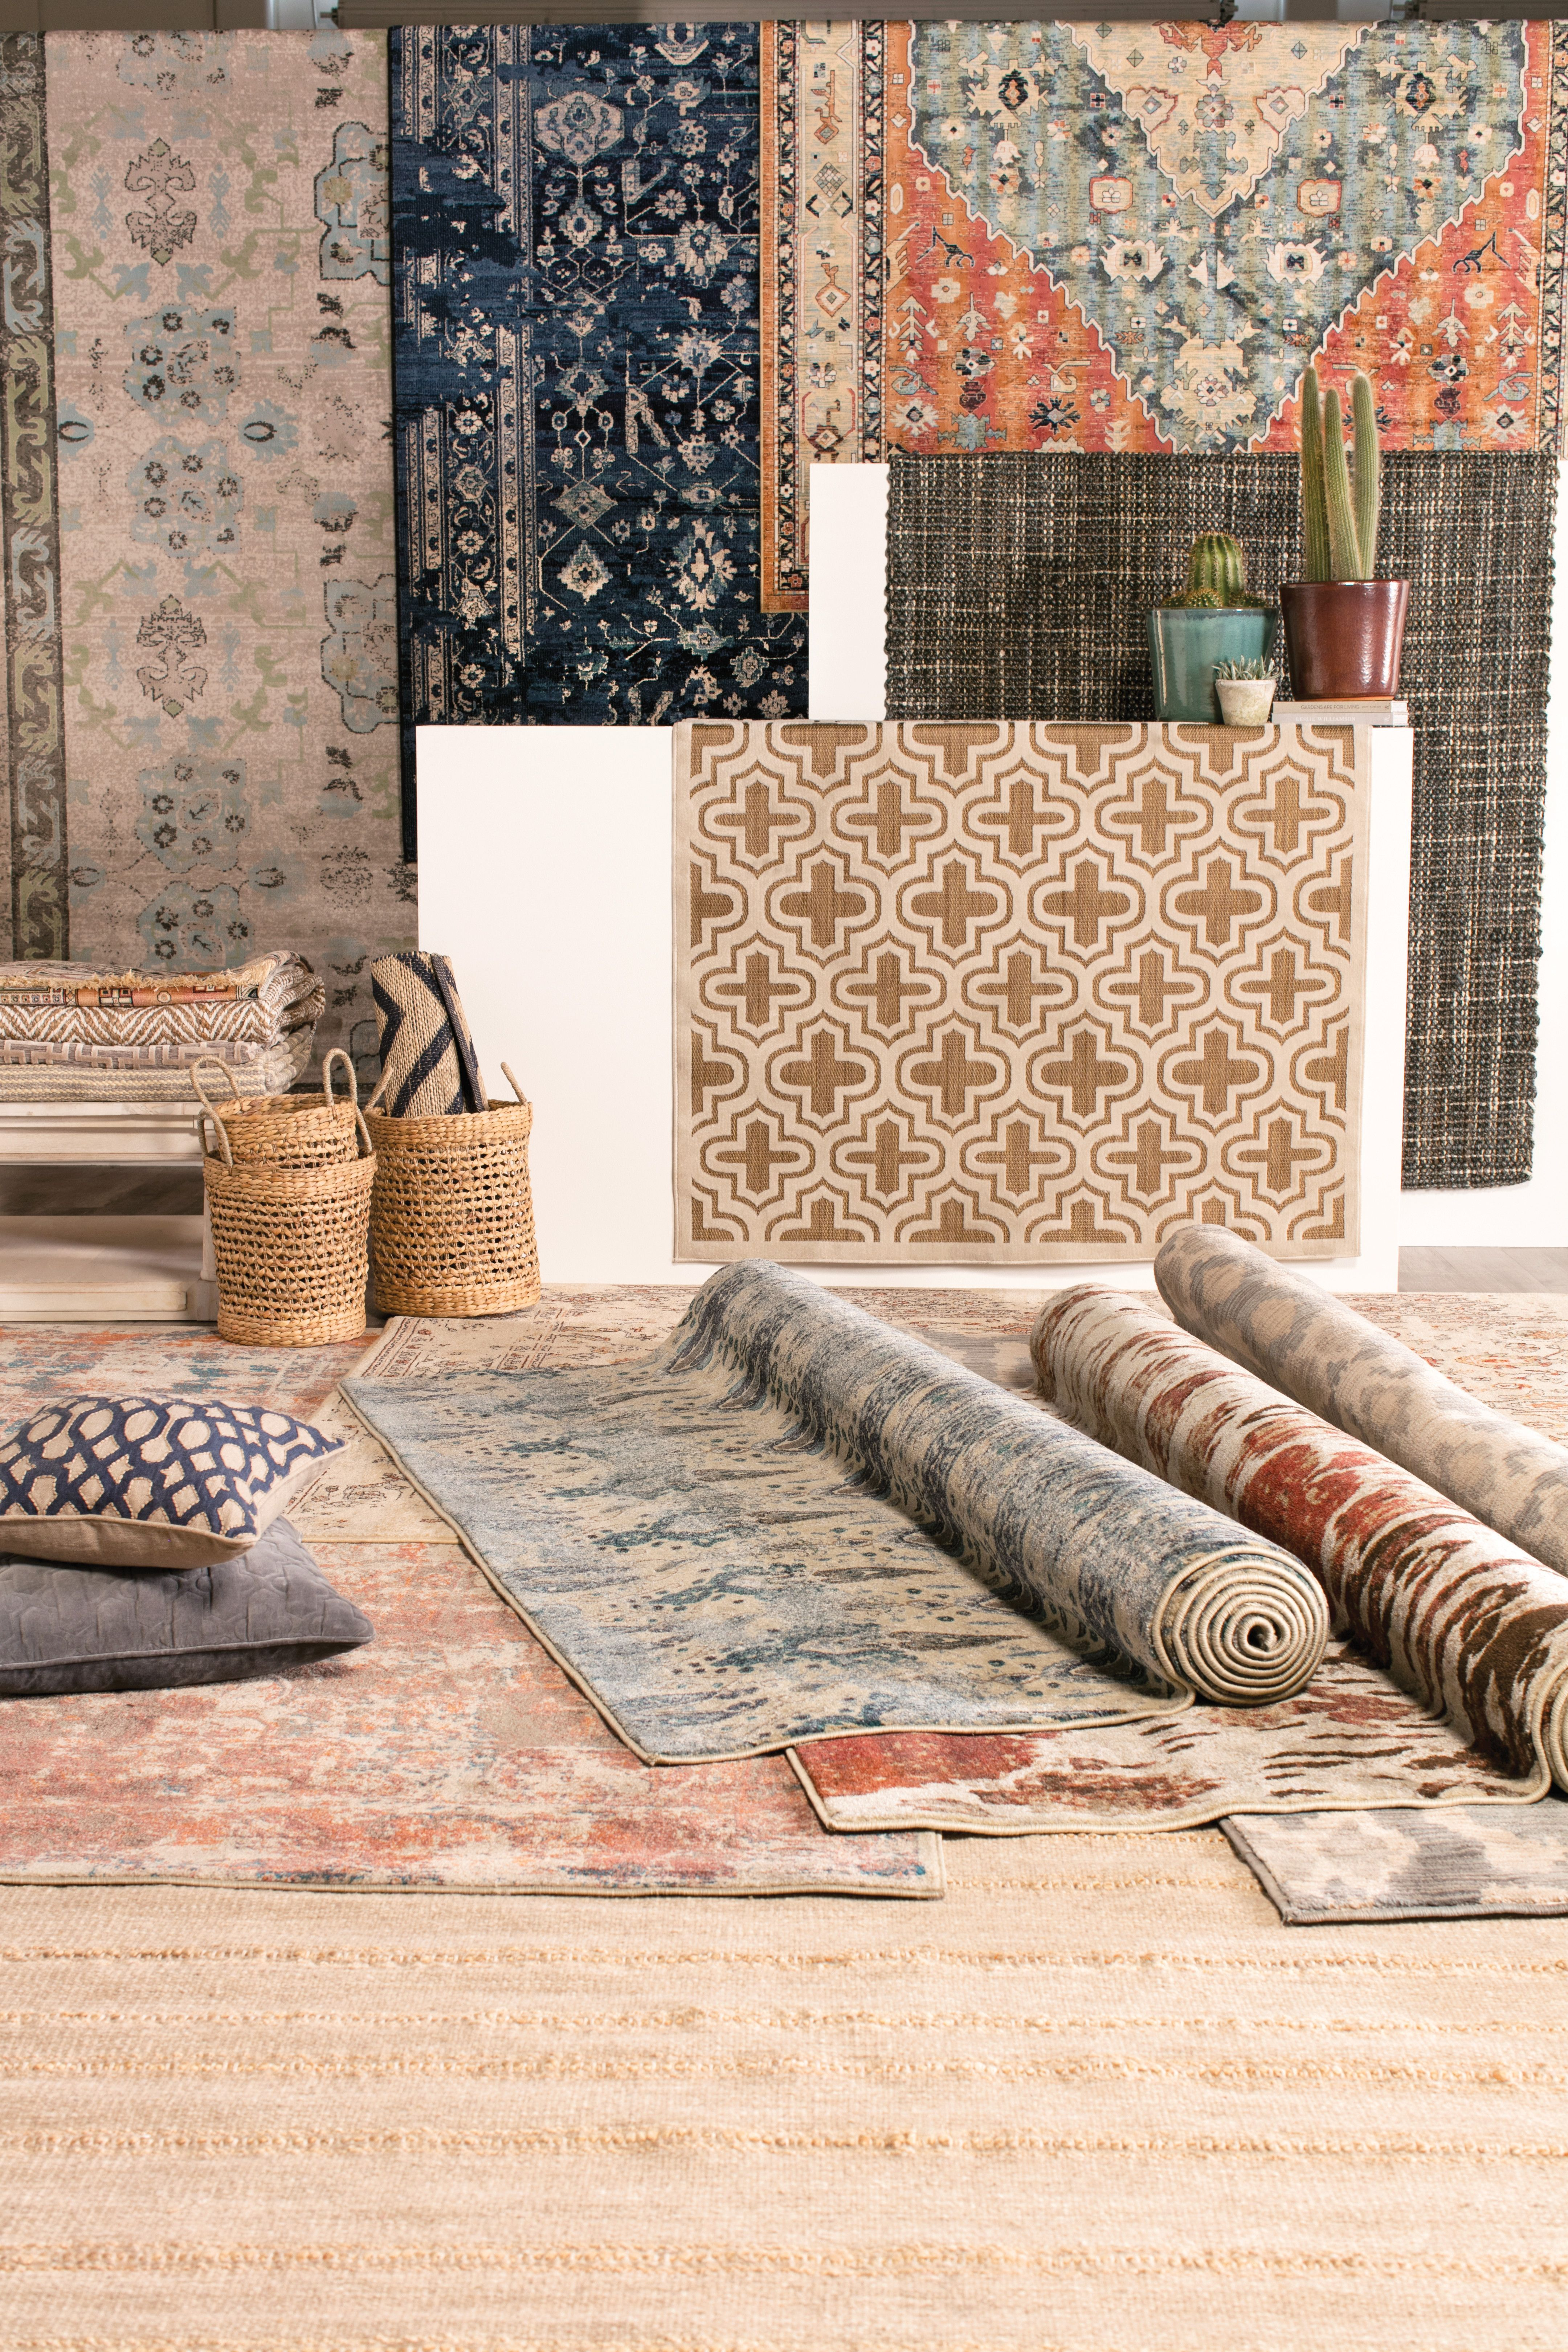 Multi Colored Area Rugs In Old World Patterns And Textures Find Area Rugs In Every Color Size At Living Spaces Rugs Rugs Rugs In Living Room Living Spaces